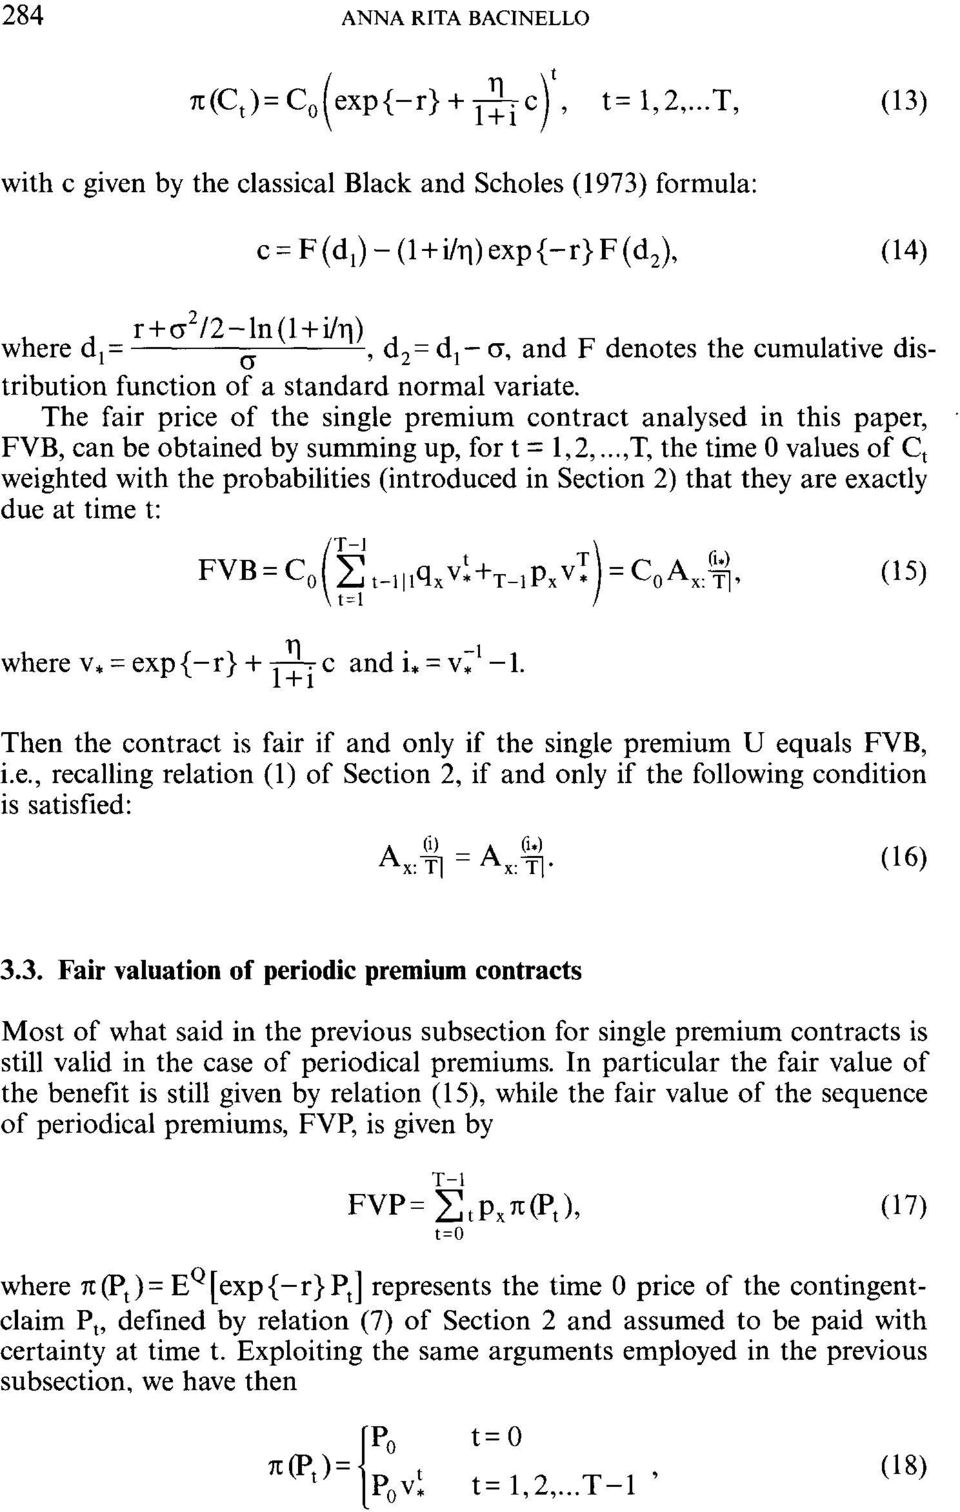 tribution function of a standard normal variate. The fair price of the single premium contract analysed in this paper, FVB, can be obtained by summing up, for t = 1,2.